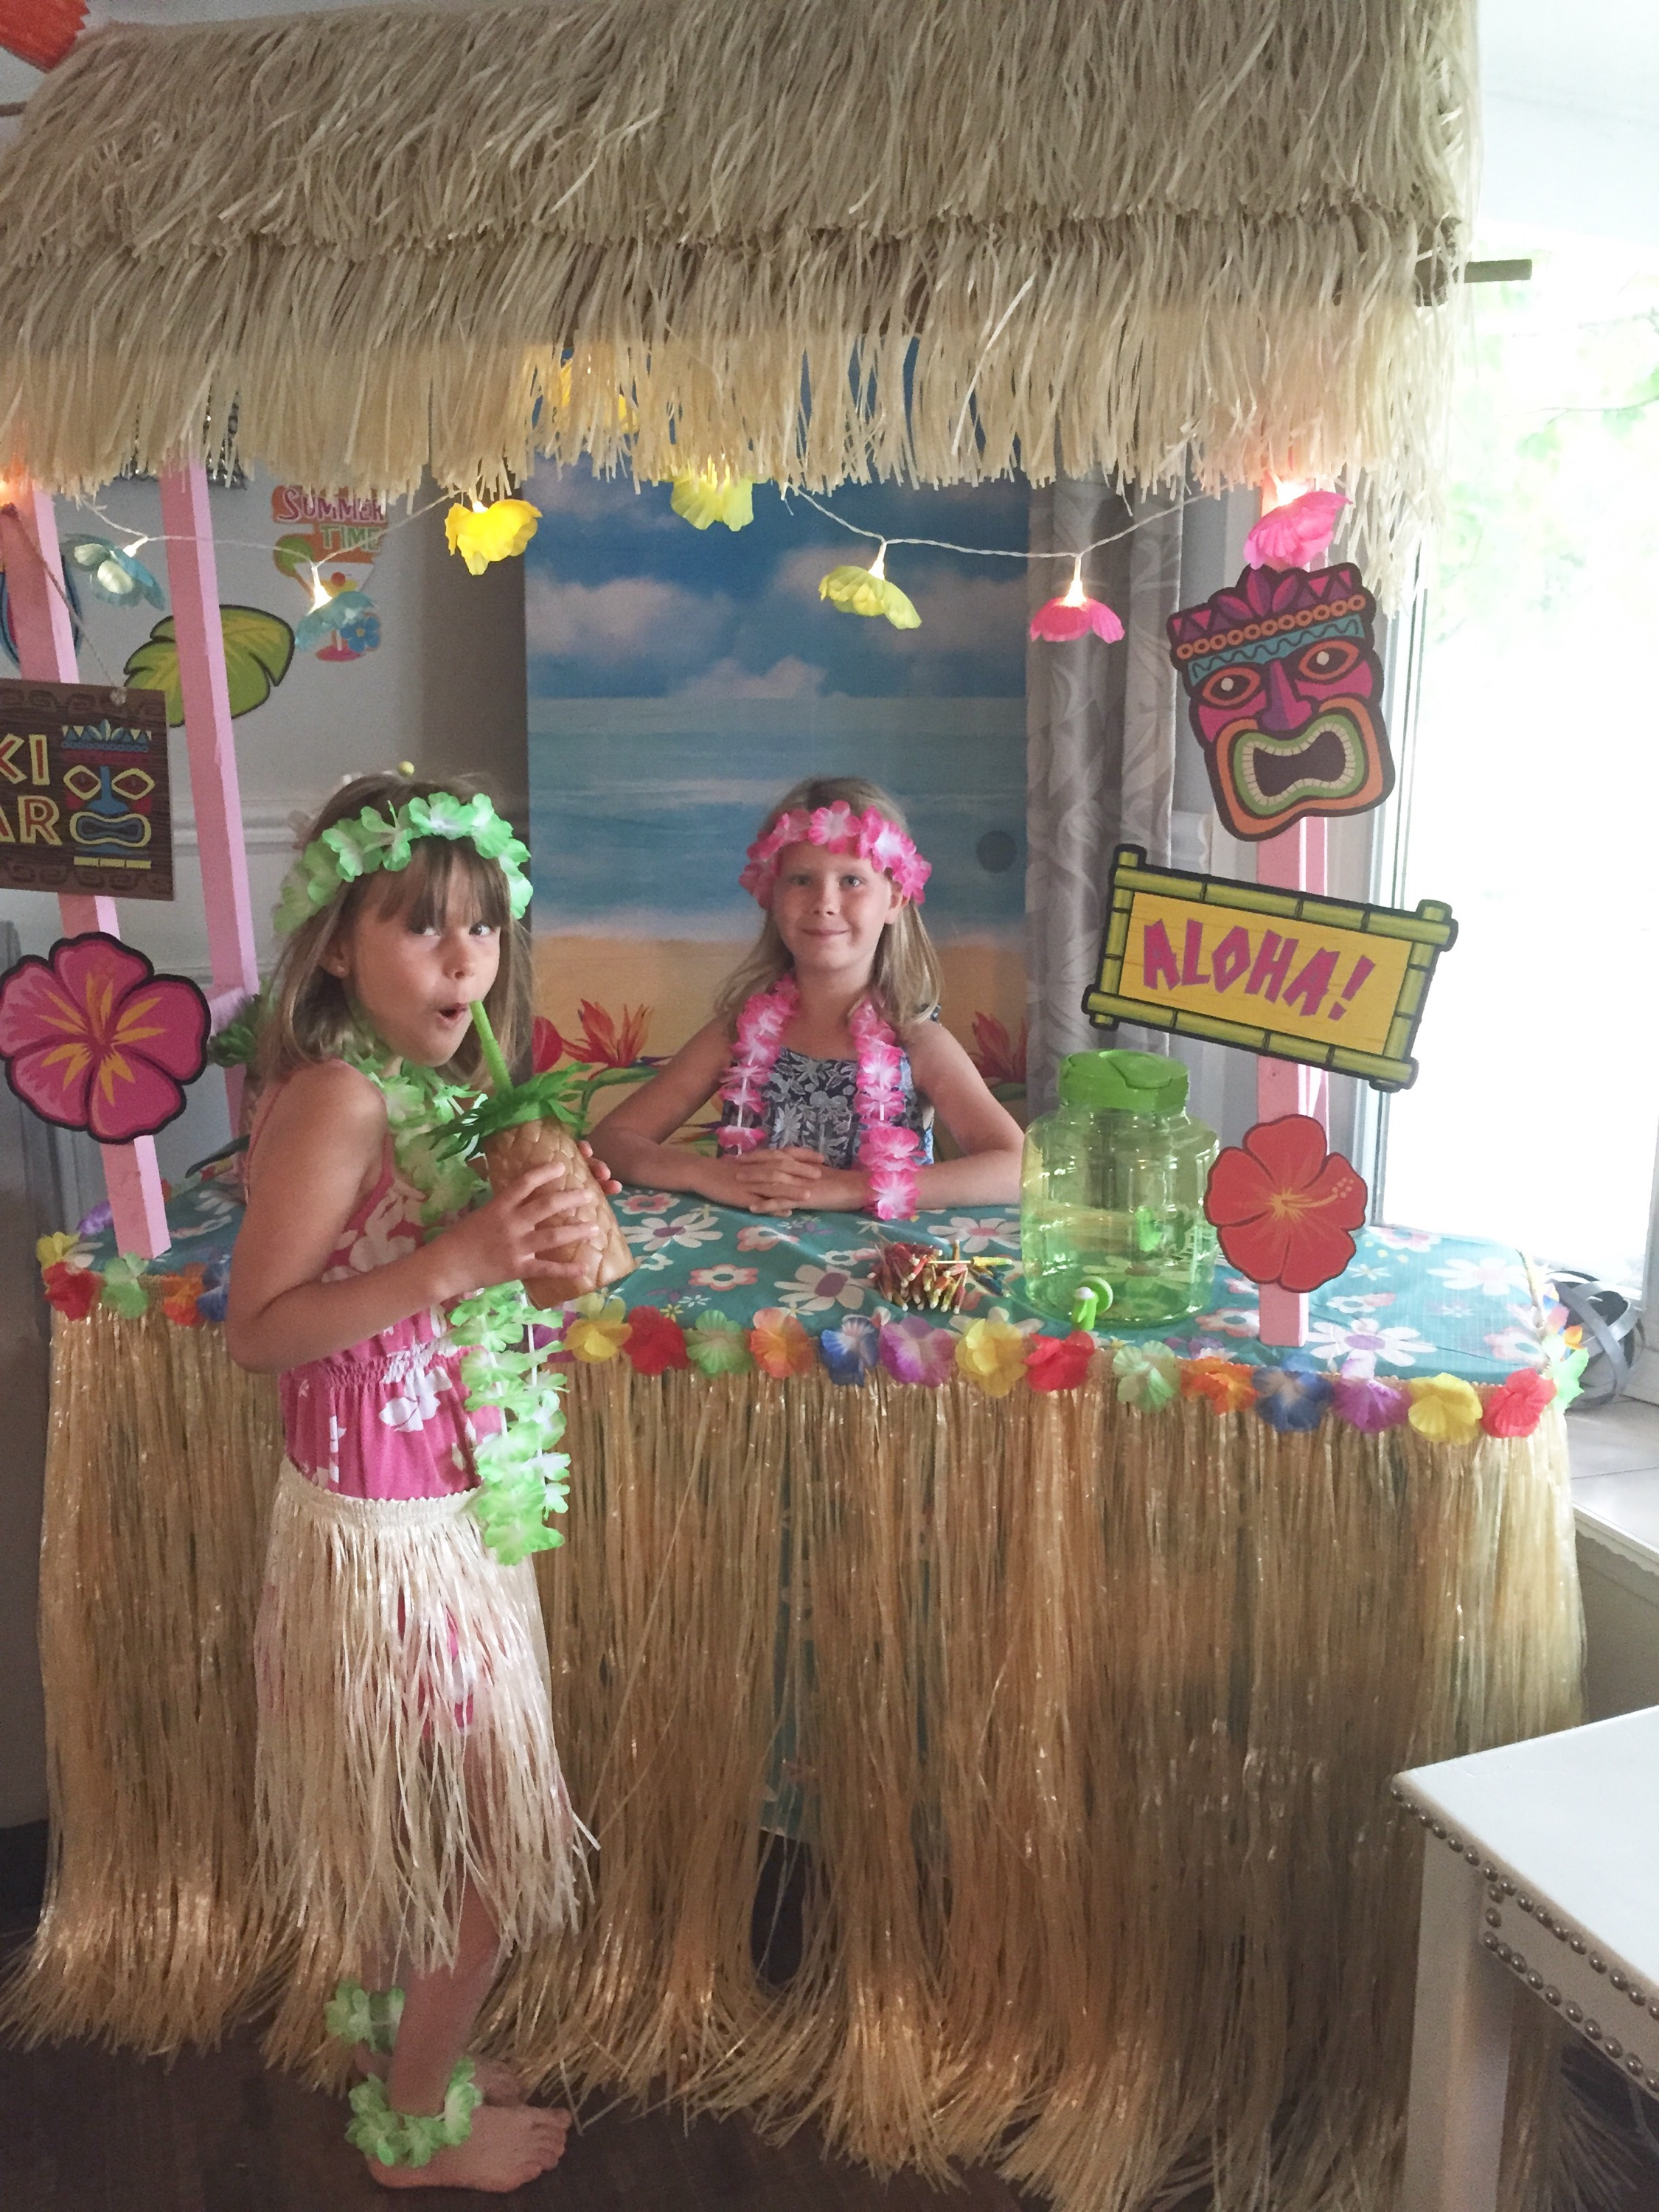 How to Throw a Luau Party for a fun kids birthday / Luau Party Decorations / Hawaiian themed birthday party ideas / apurdy littlehouse.com